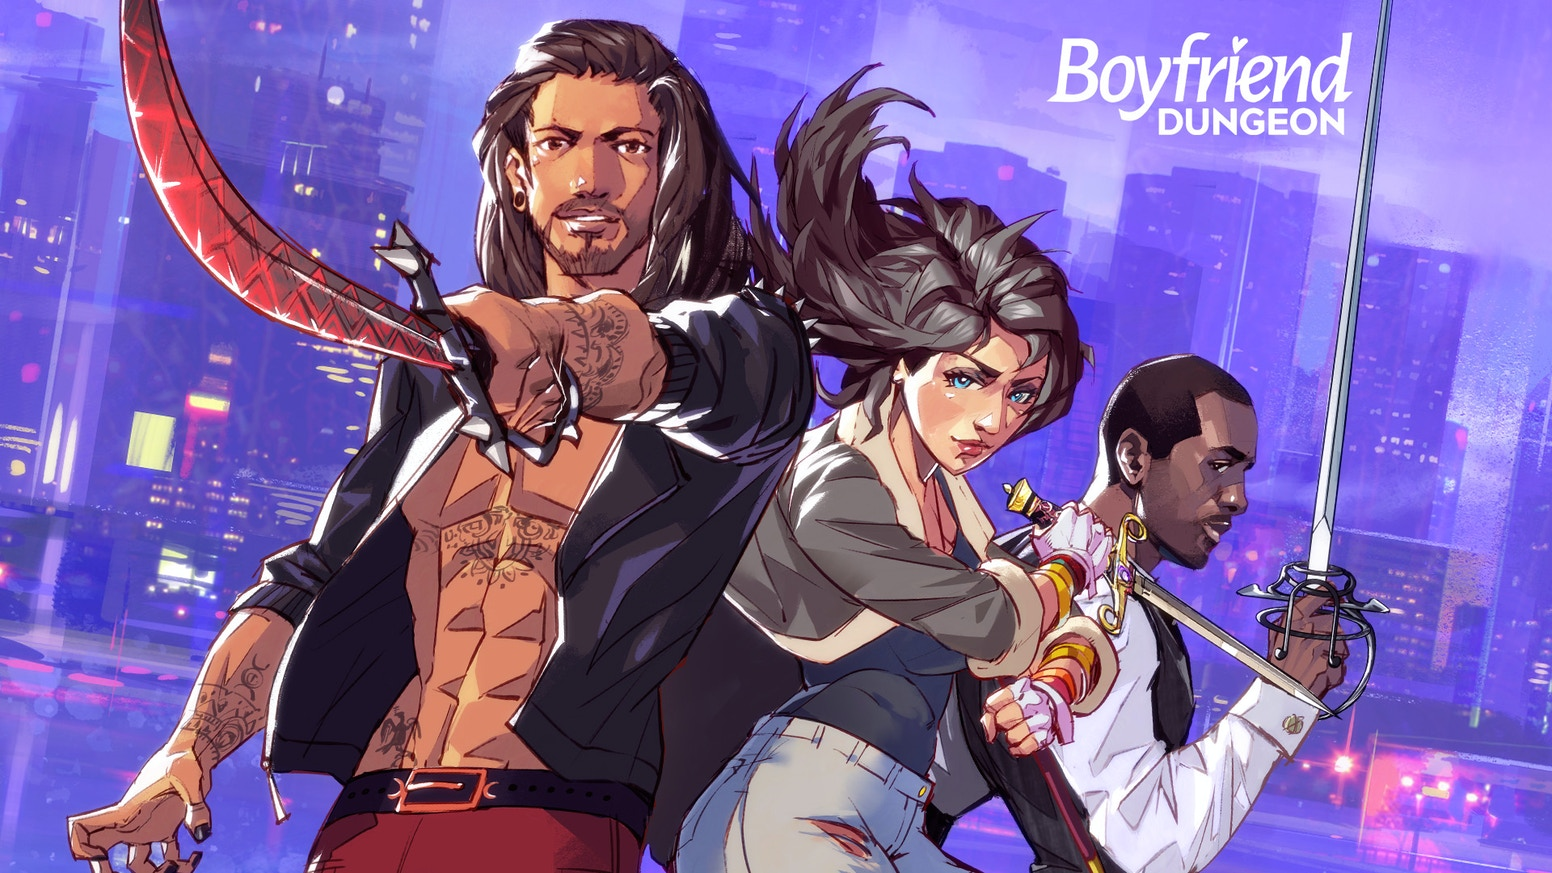 Boyfriend Dungeon: Date Your Weapons! by Kitfox Games — Kickstarter